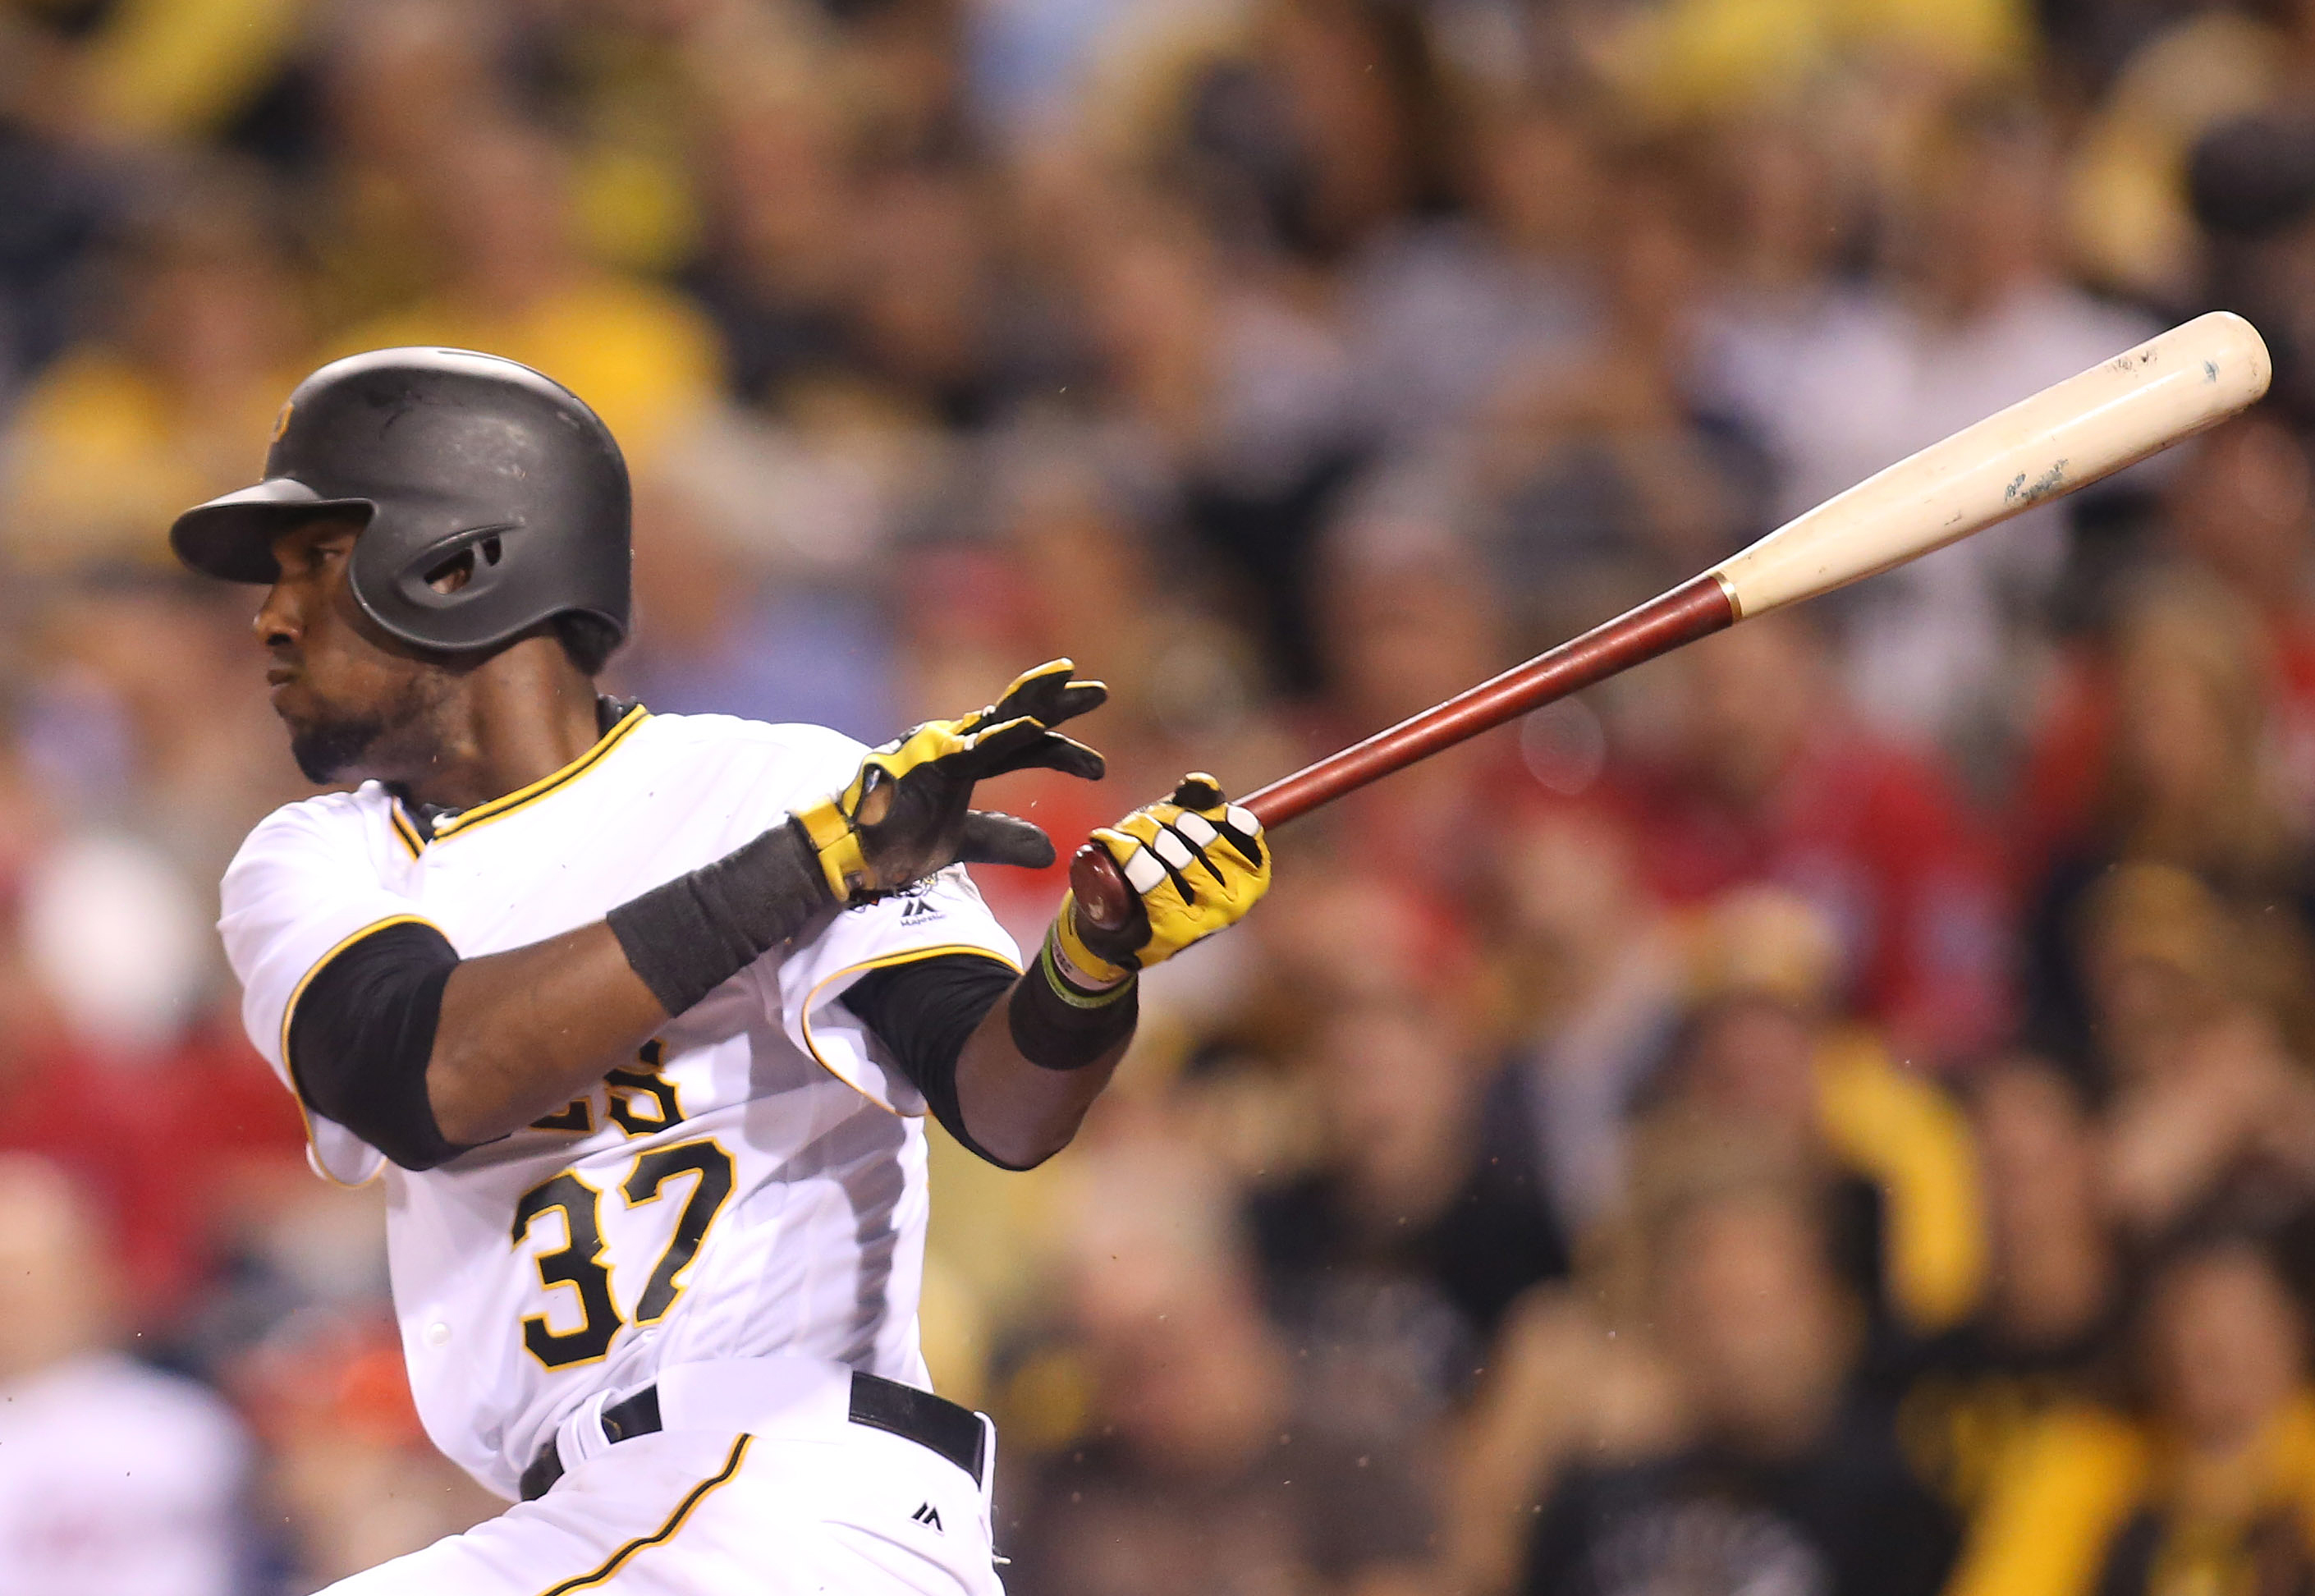 9559403-mlb-washington-nationals-at-pittsburgh-pirates